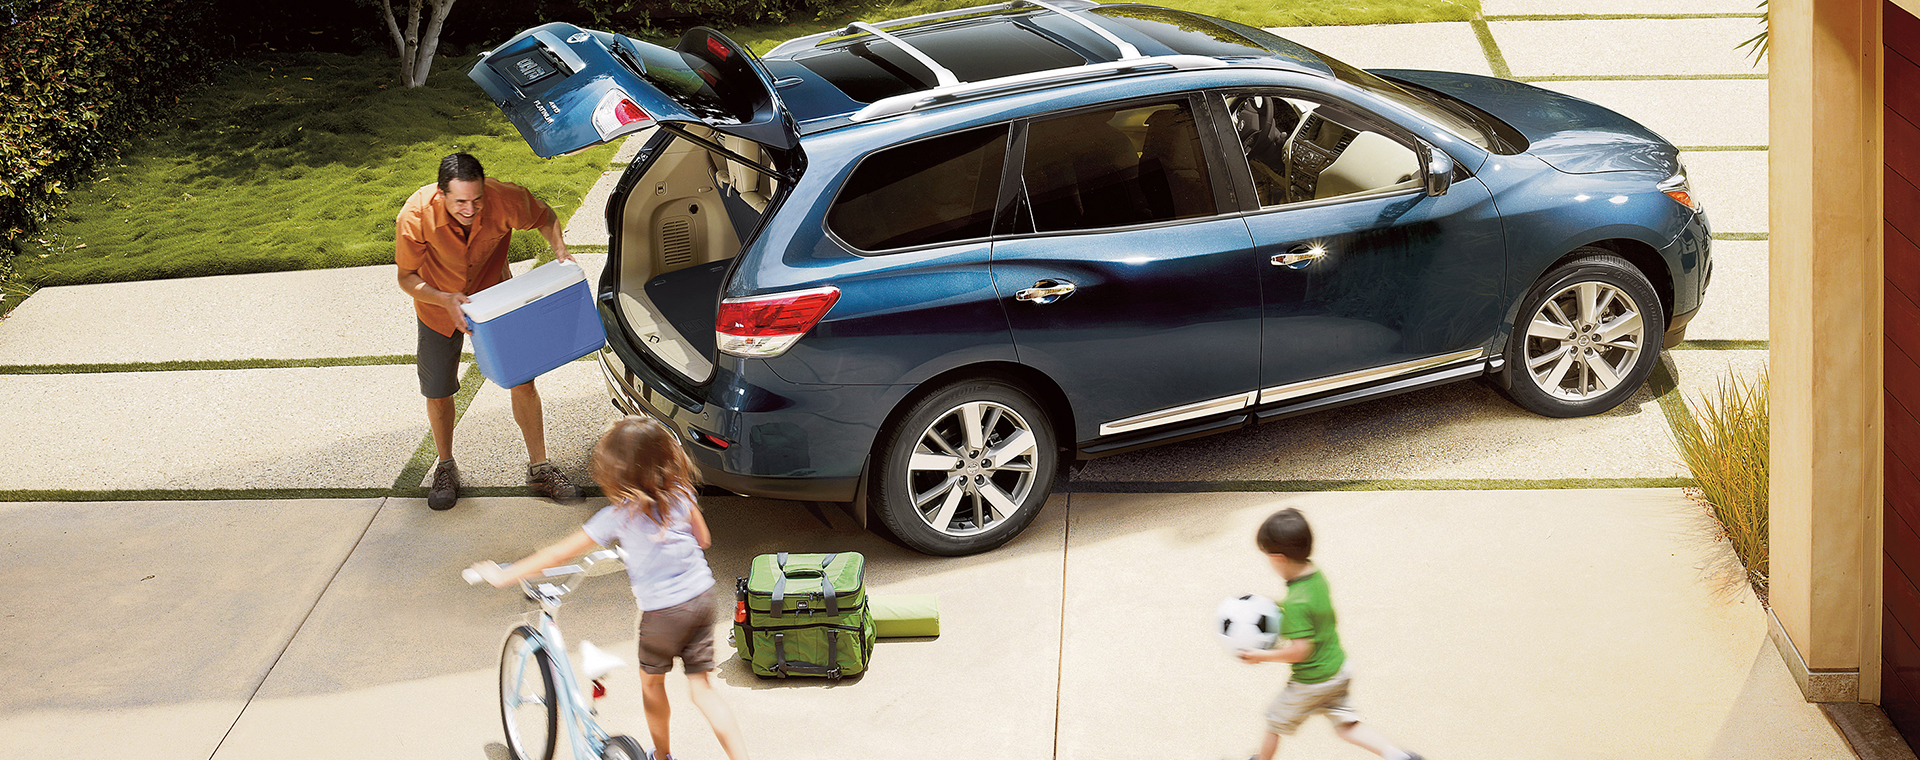 New Pathfinder inventory at Quirk Nissan